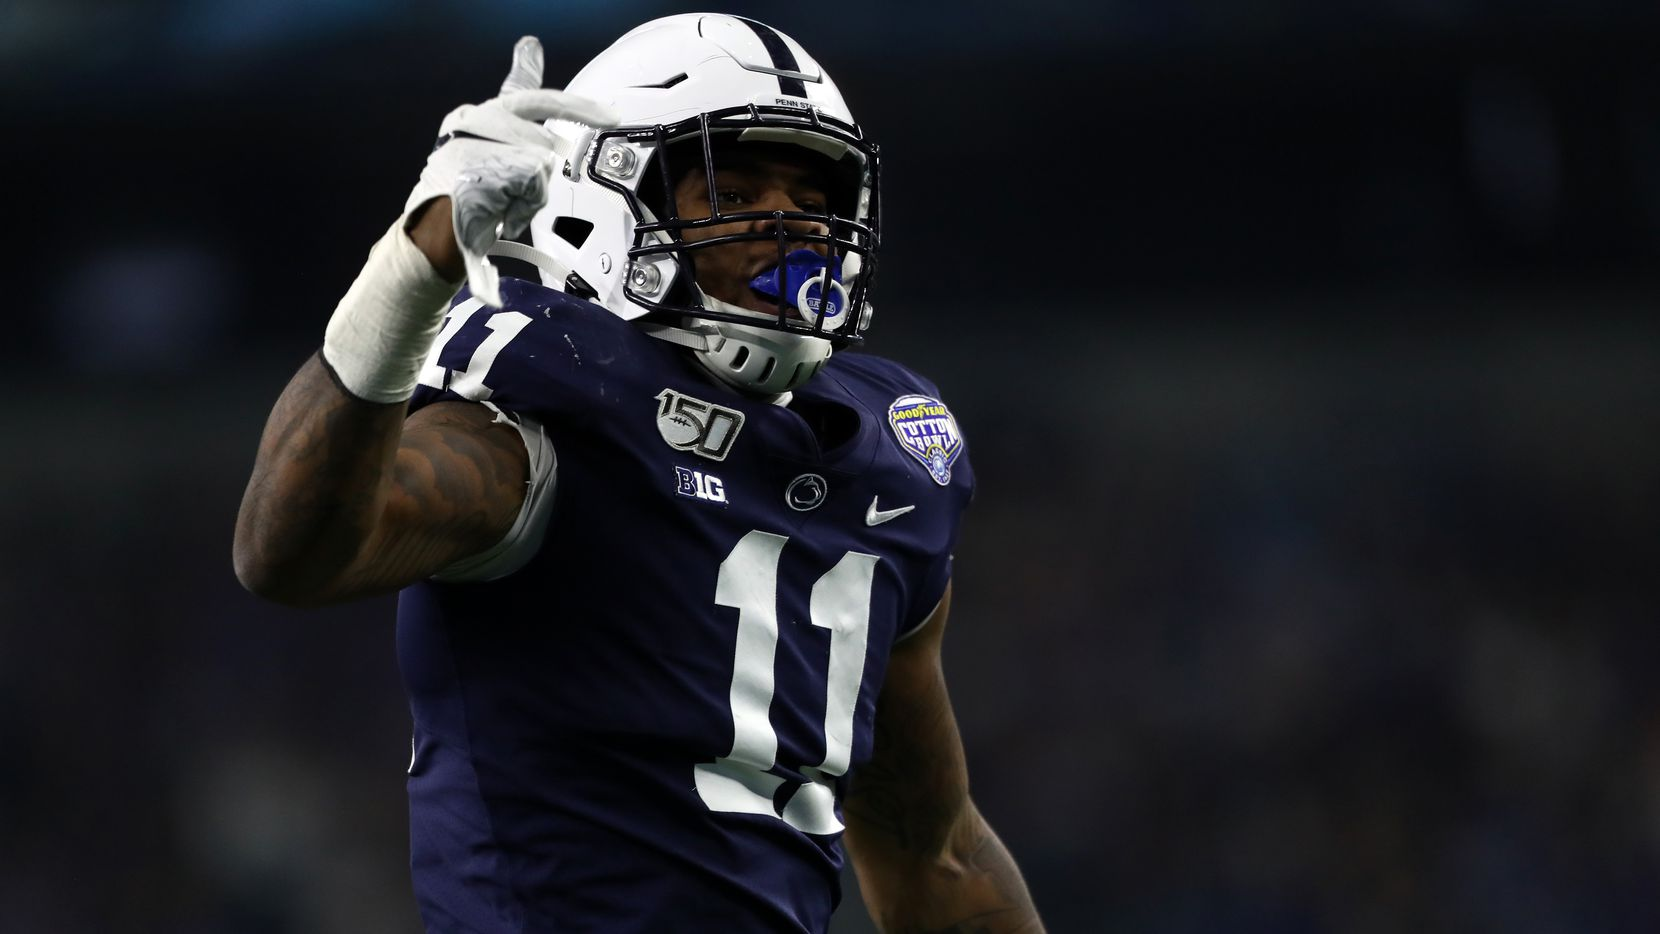 In this photo from 2019, Penn State linebacker Micah Parsons (11) reacts after sacking Memphis quarterback Brady White (3) in the first half of the Cotton Bowl Classic at AT&T Stadium in Arlington. (Ronald Martinez/Getty Images/TNS)